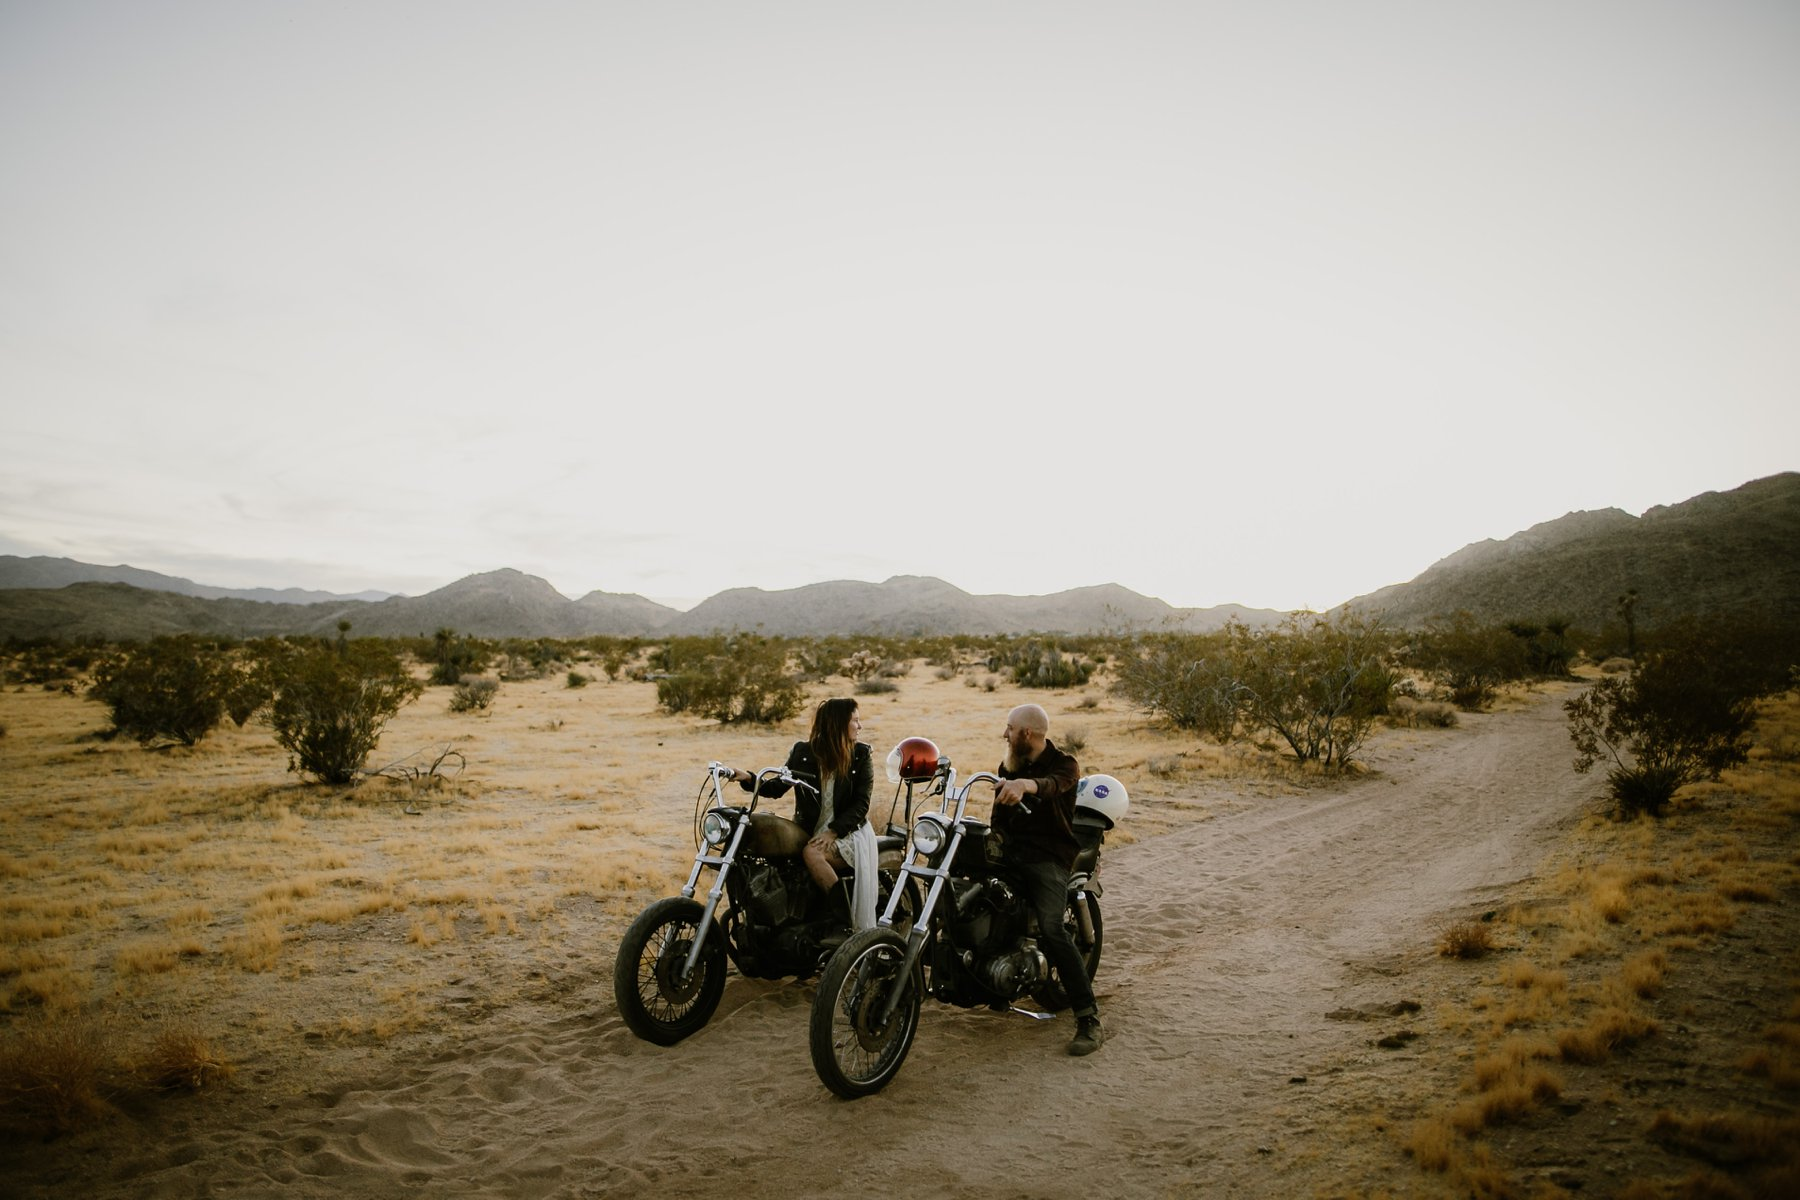 A photo at a motorcycle elopement